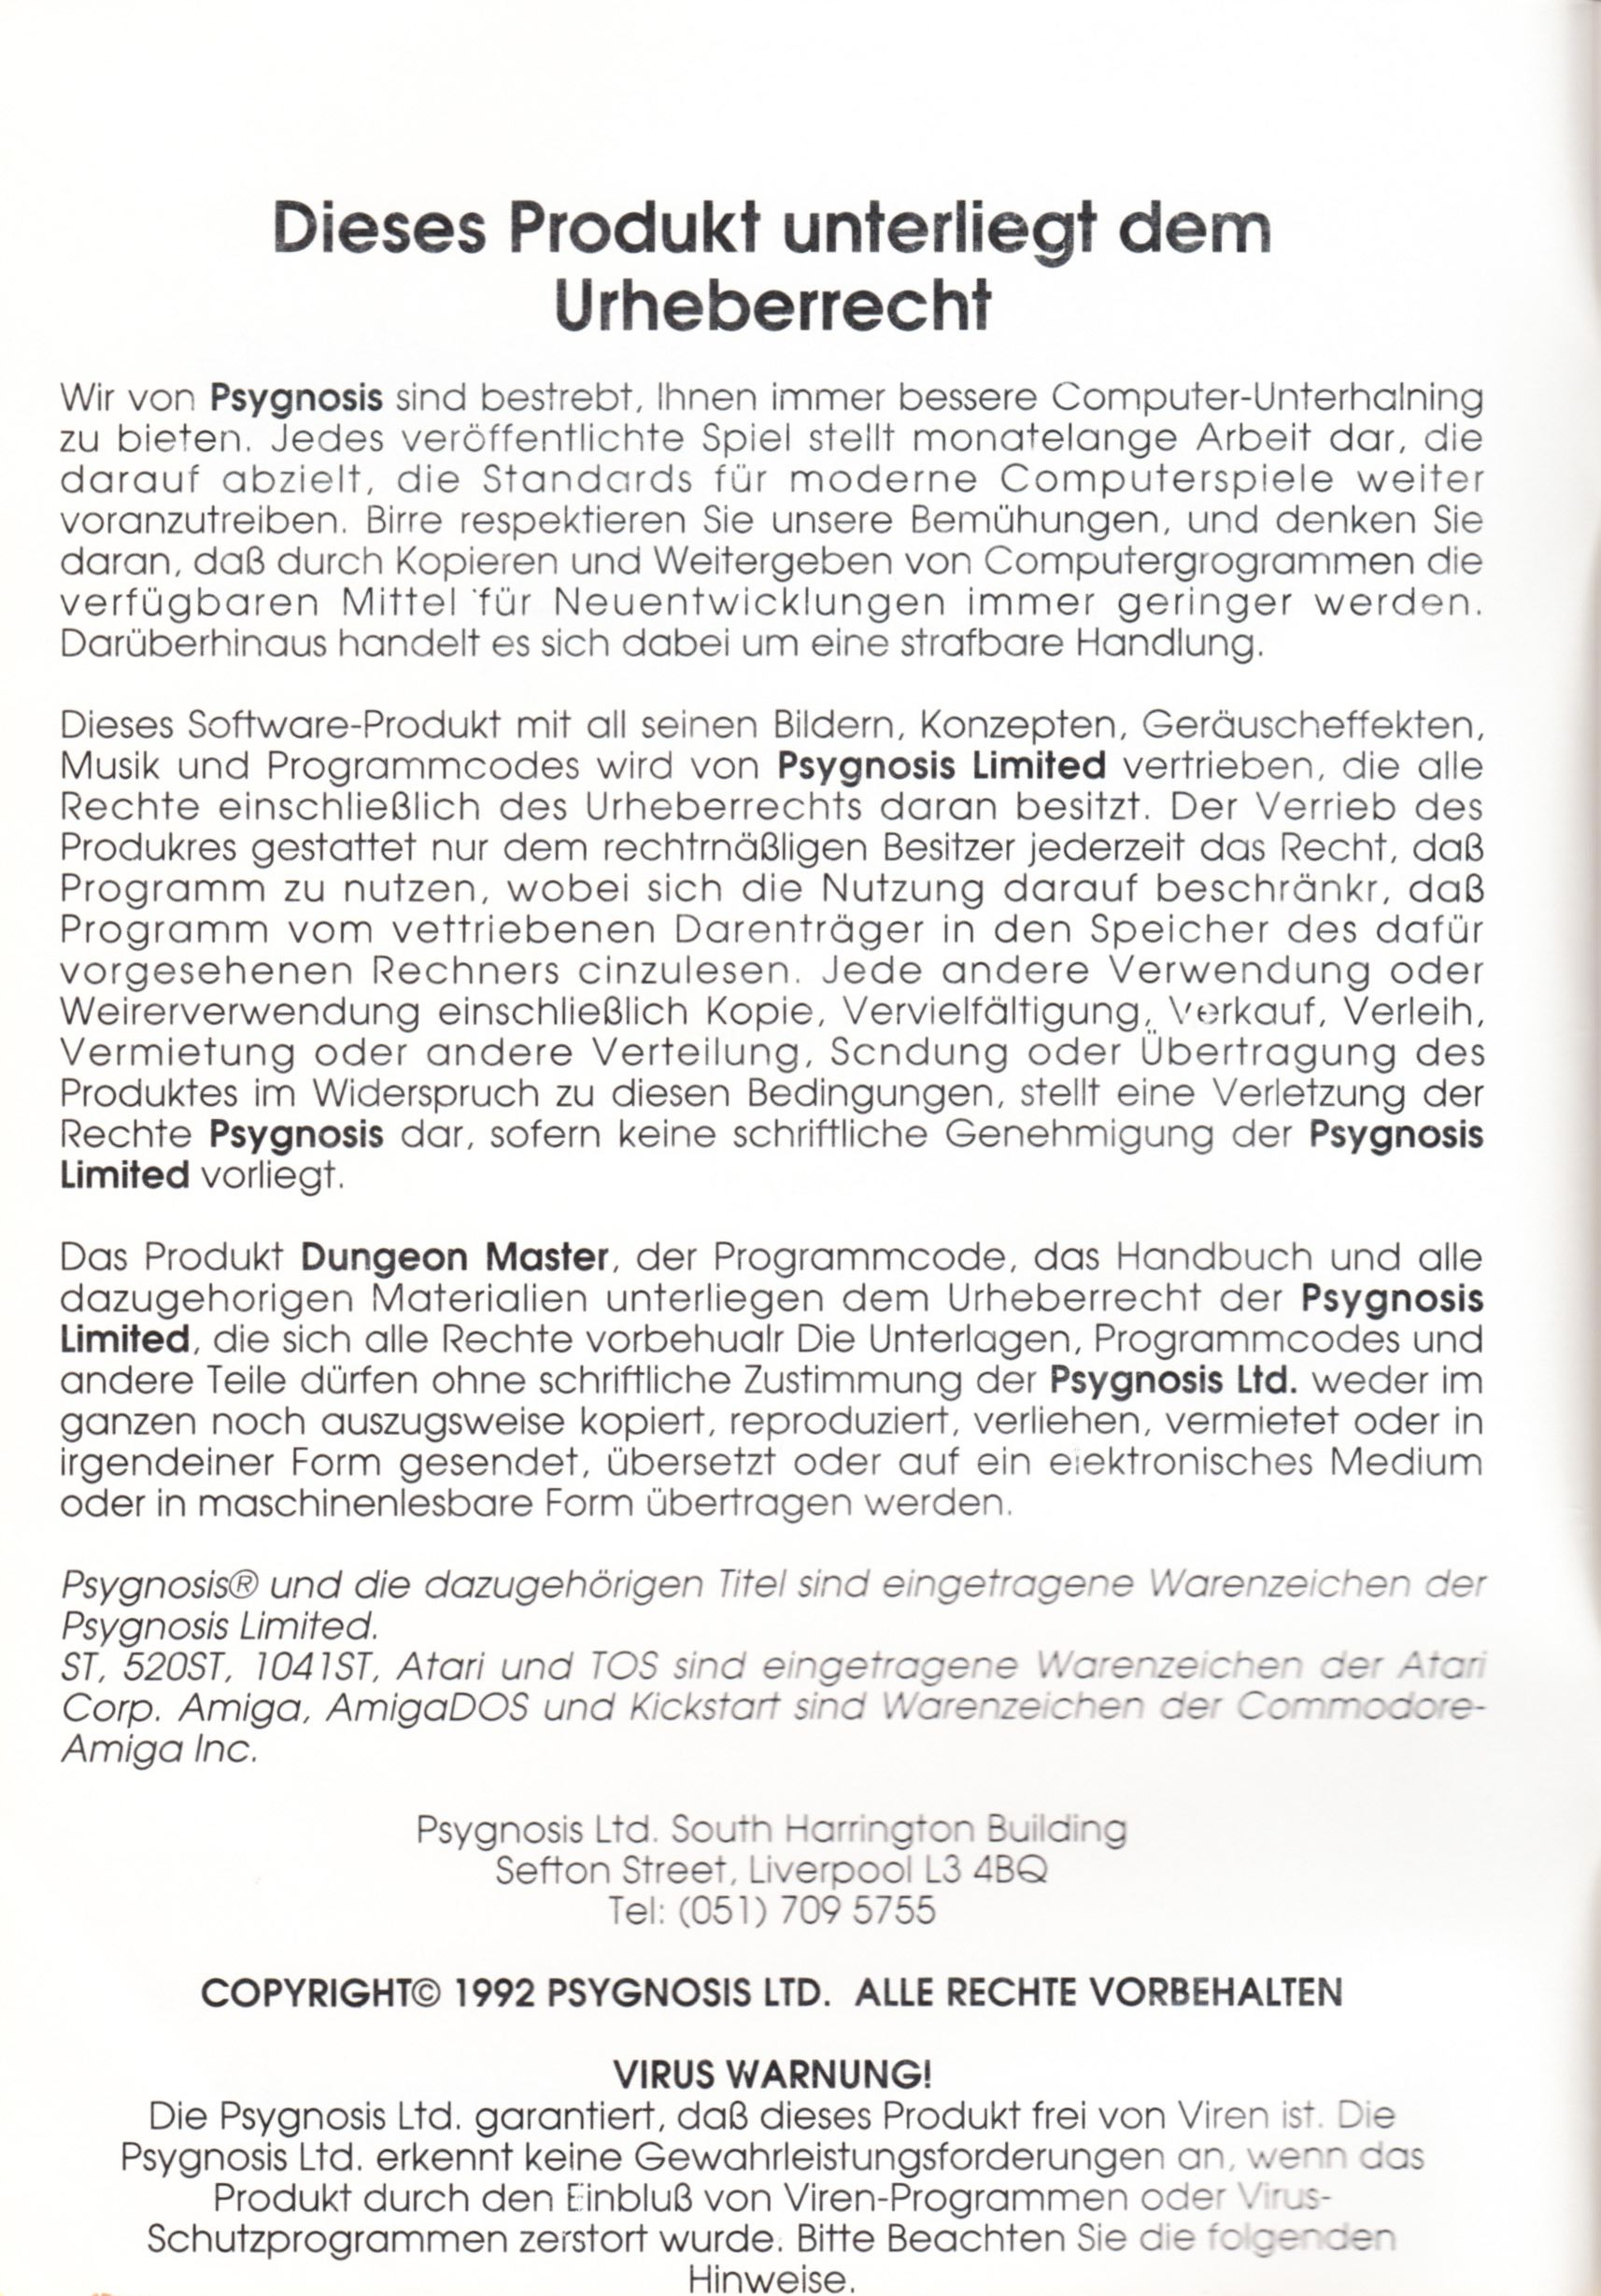 Game - Dungeon Master - DE - PC - Psygnosis - Manual - Page 002 - Scan